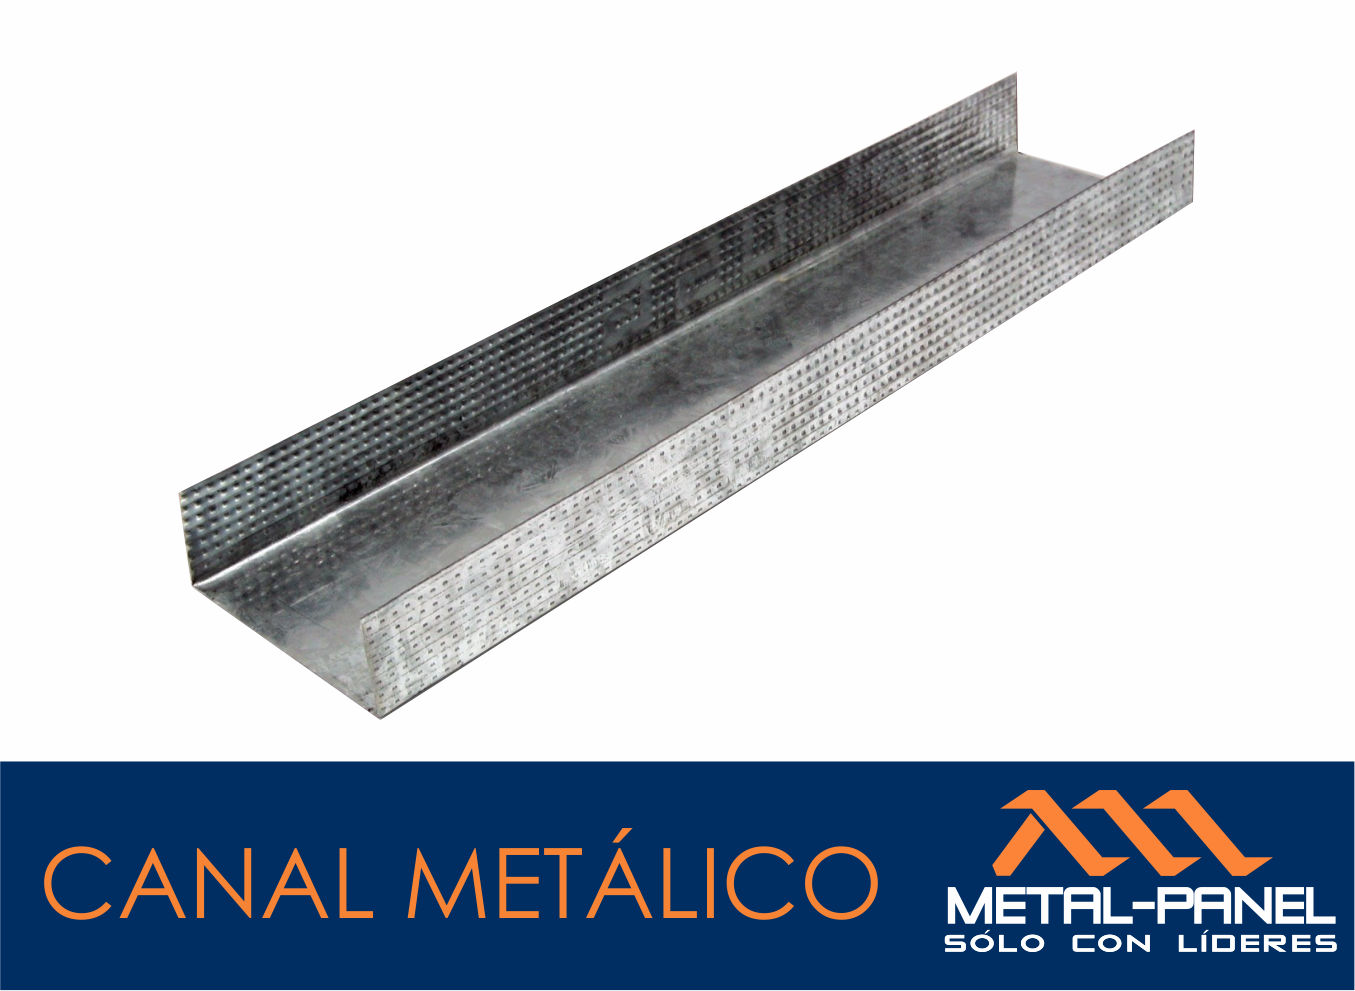 CANAL METALICO